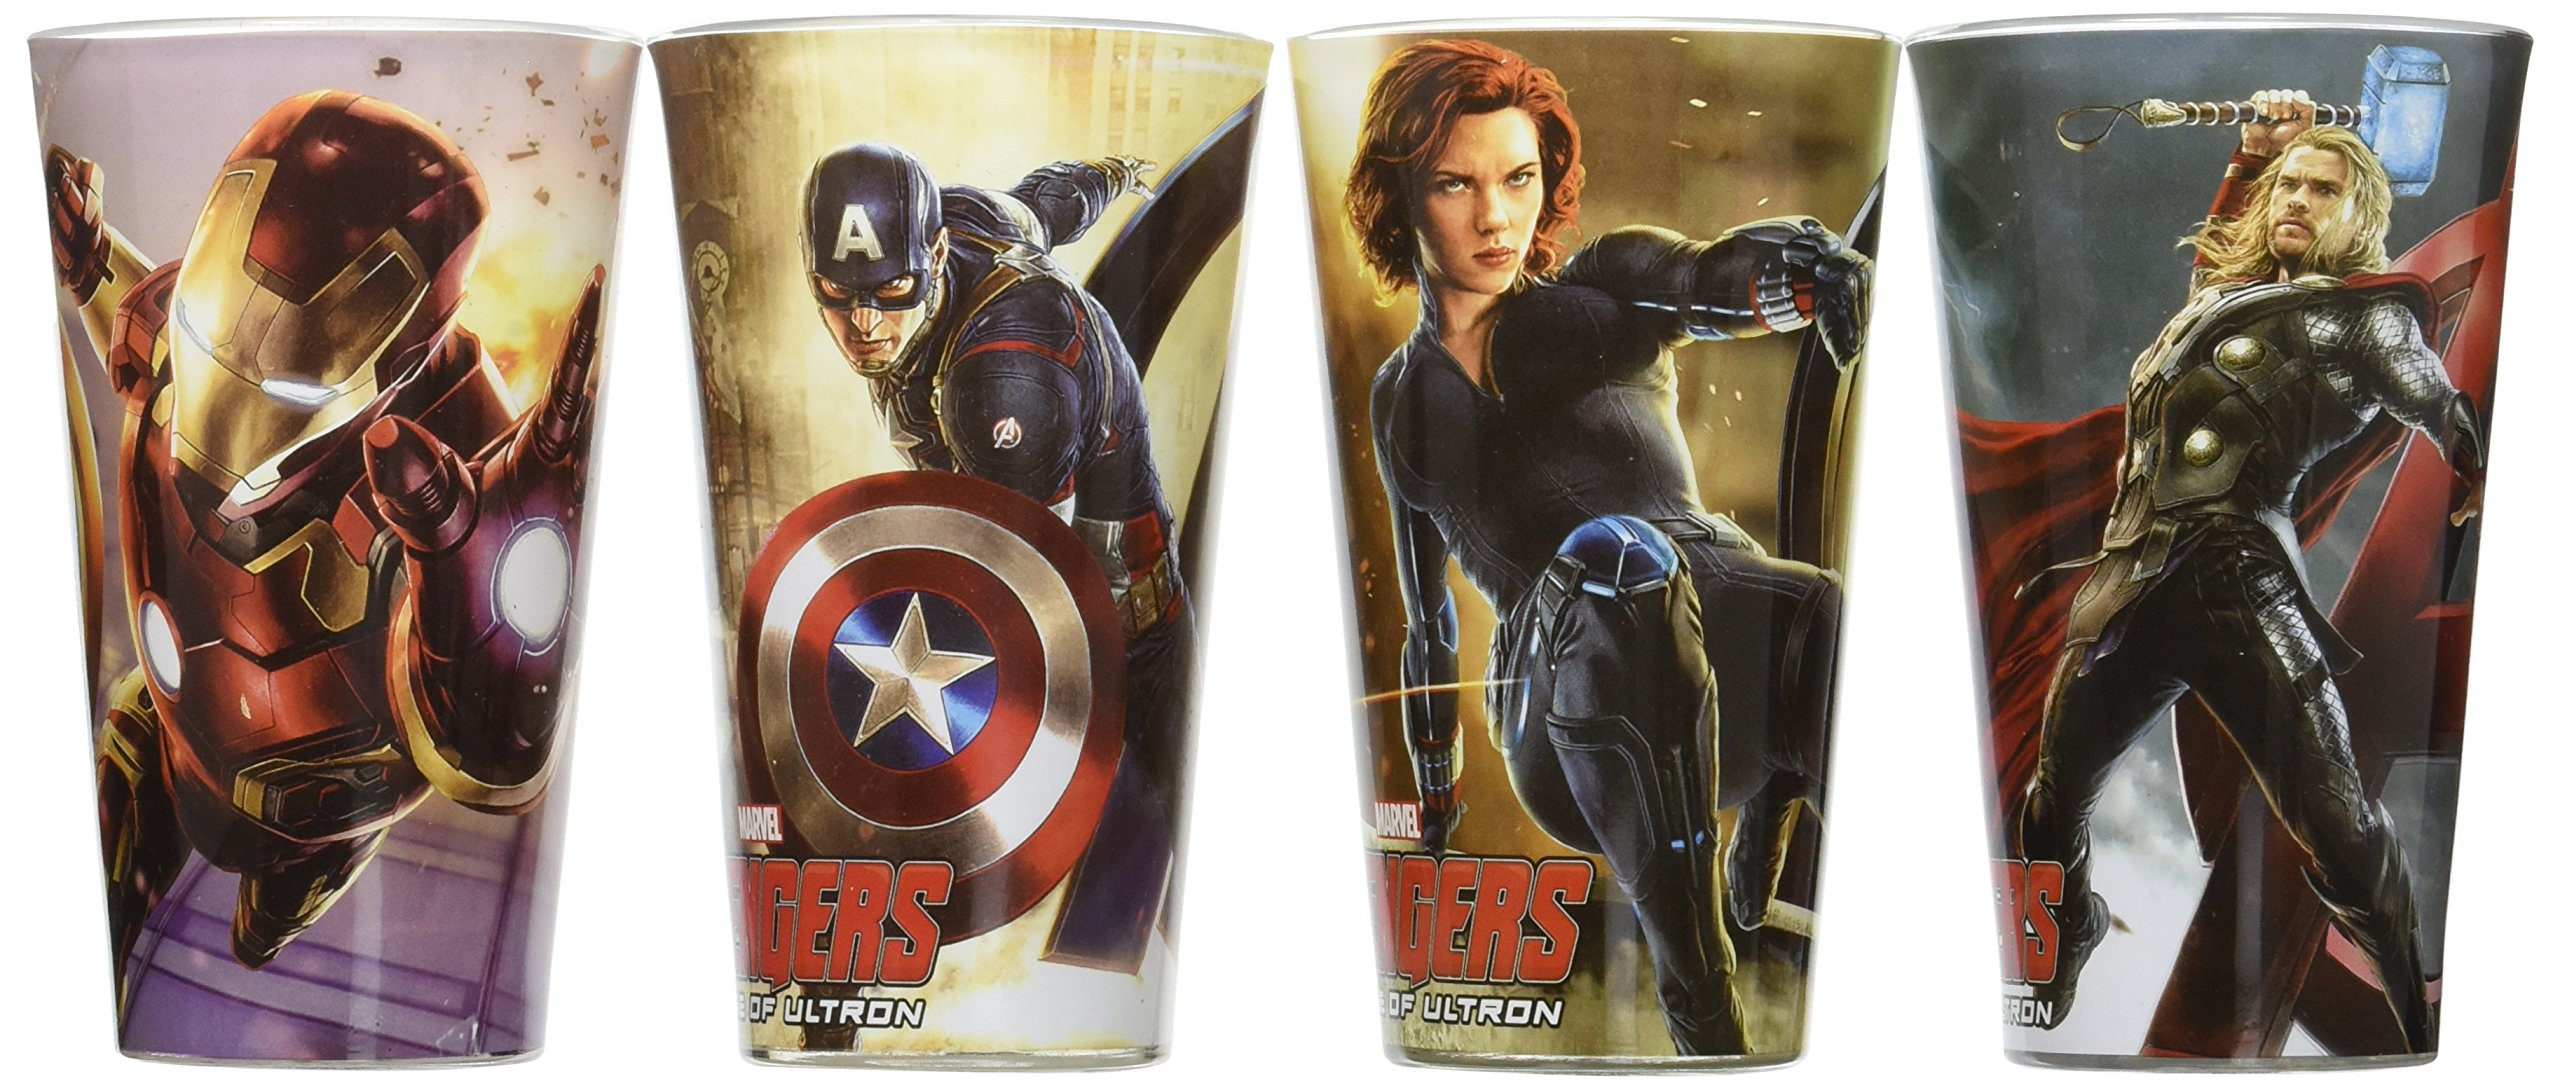 ICUP Marvel Avengers Age of Ultron Full Color Pint Glass (4 Pack), Clear by ICUP (Image #1)